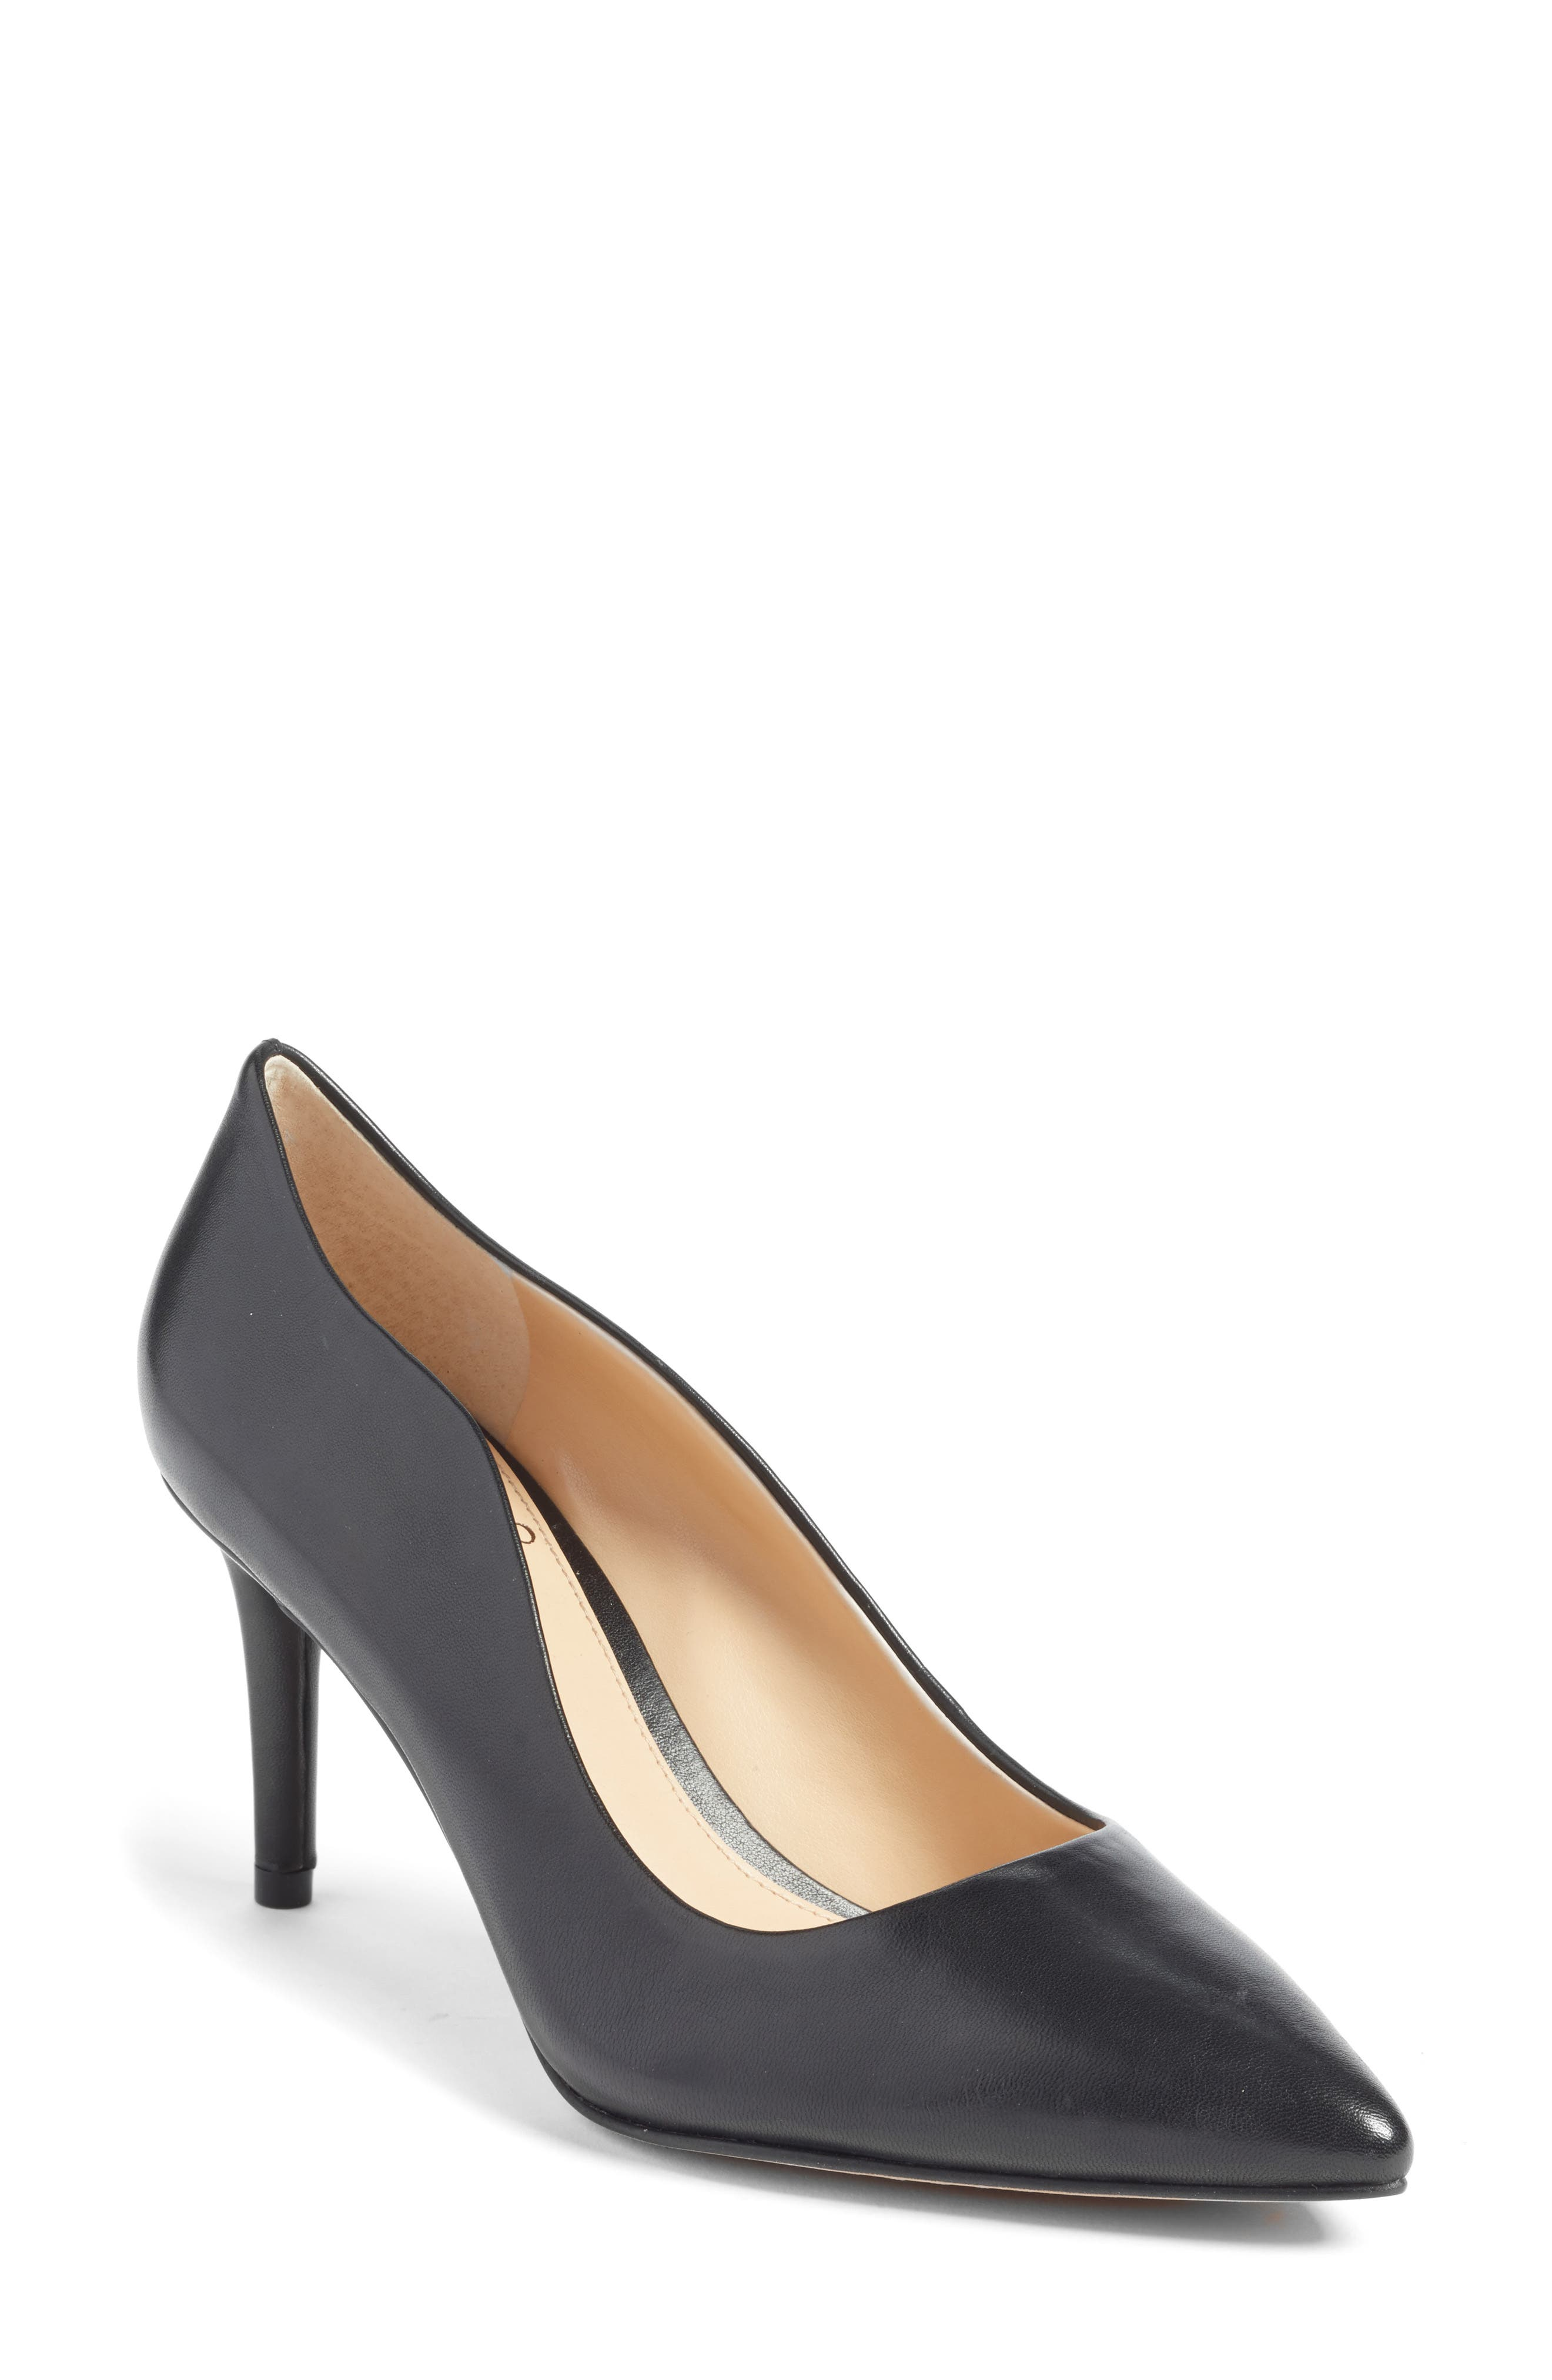 Jaynita Pointy Toe Pump,                             Main thumbnail 1, color,                             001